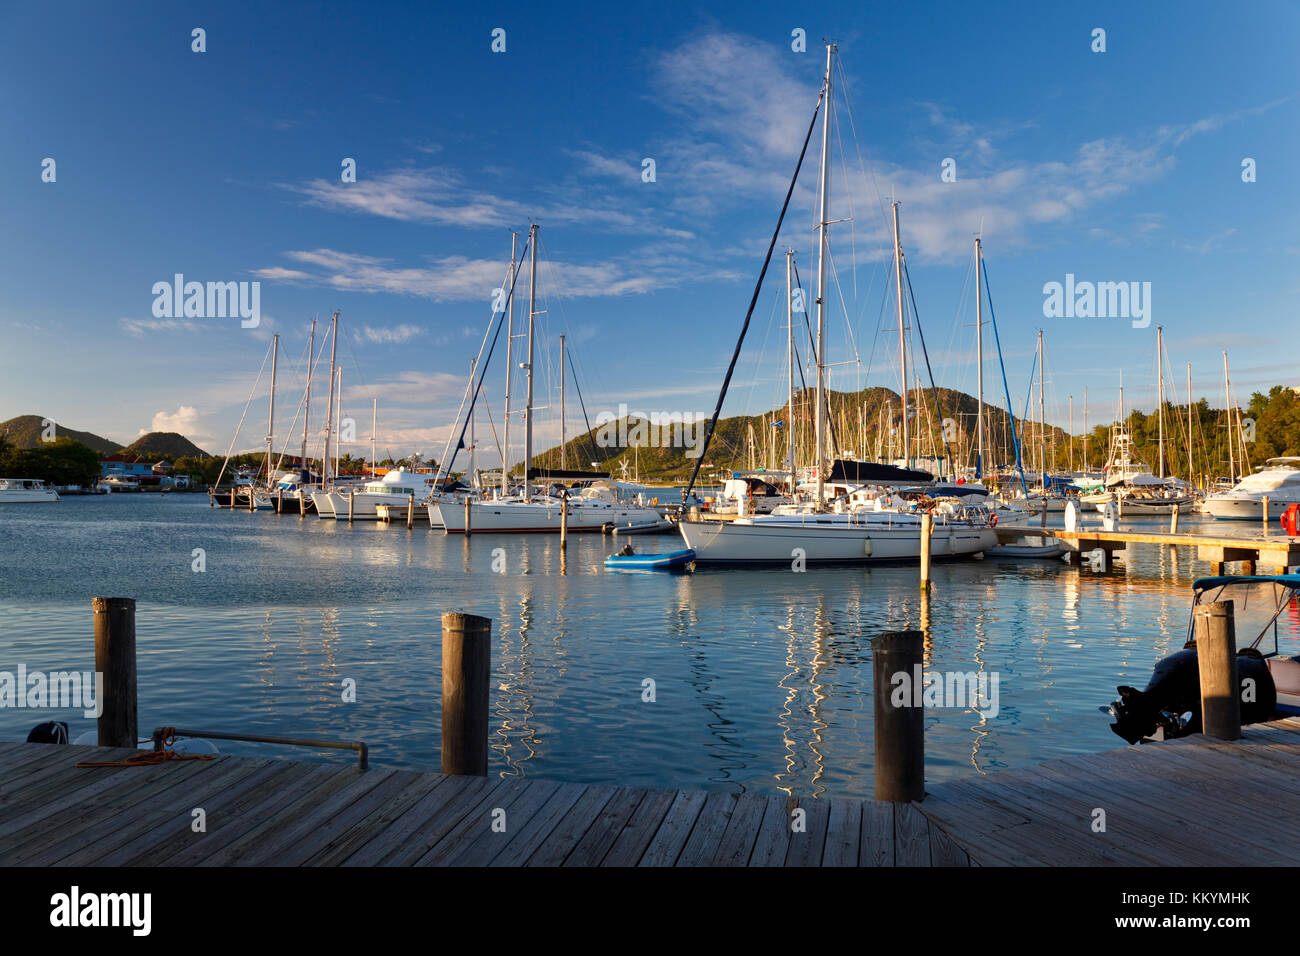 A daytime shot of sailboats in Jolly Harbour, Antigua. - Stock Image